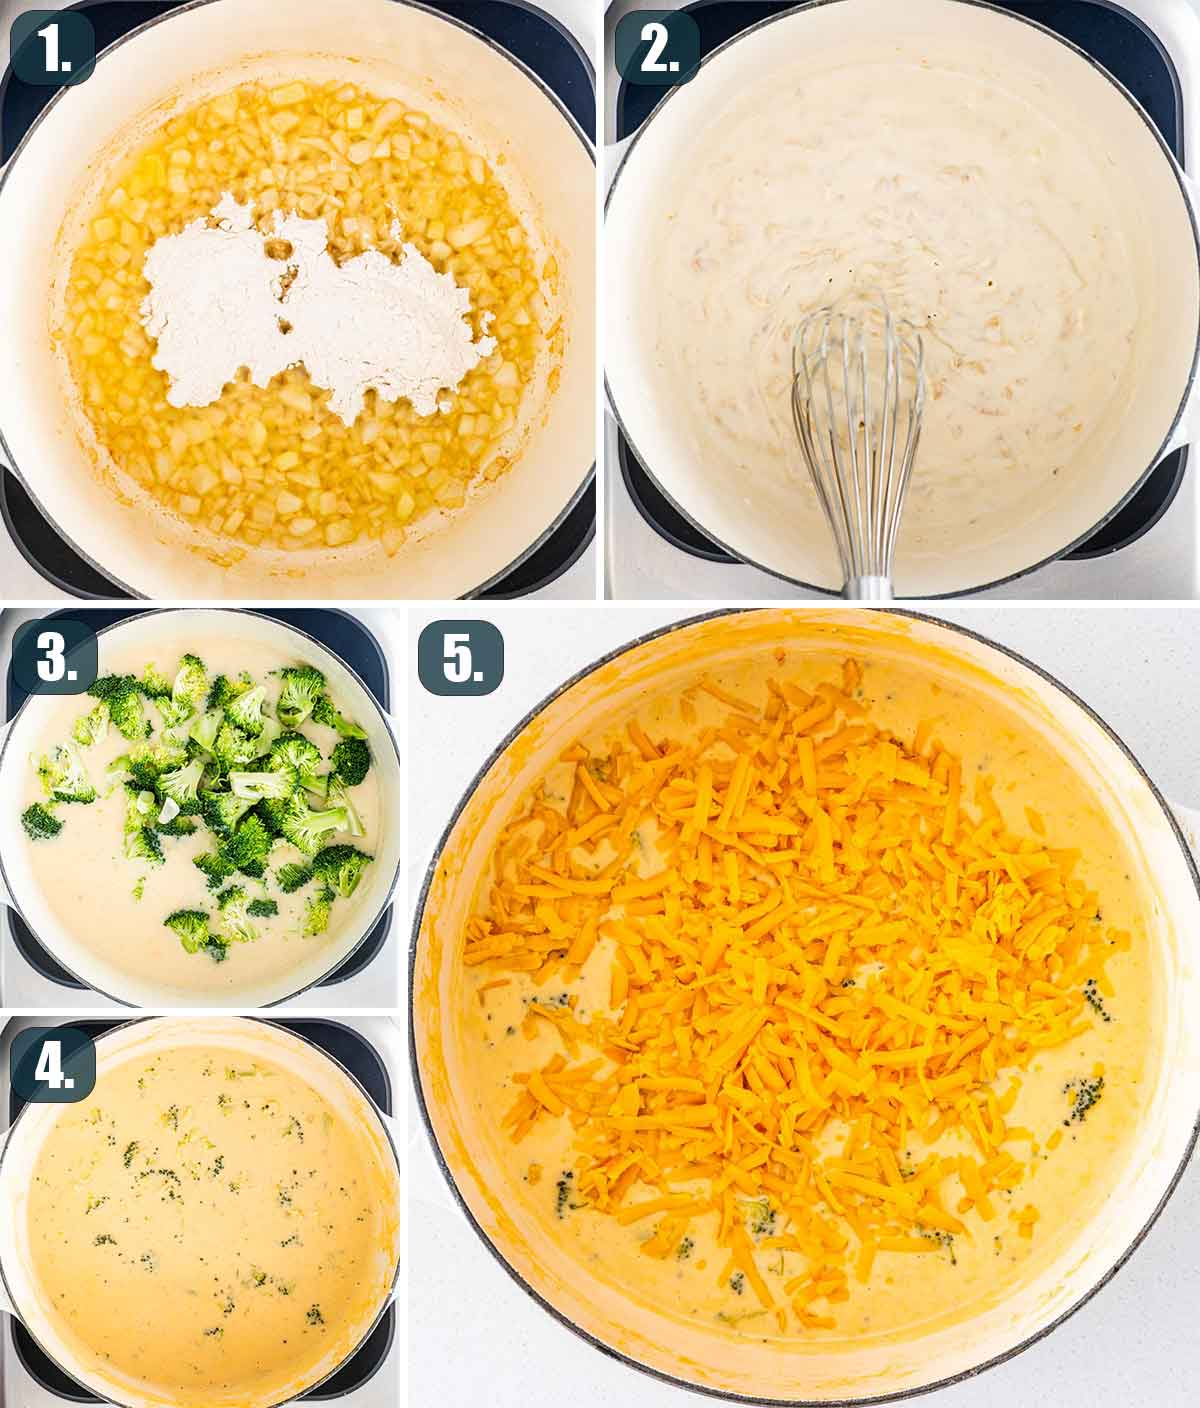 detailed process shots showing how to make broccoli cheese soup.